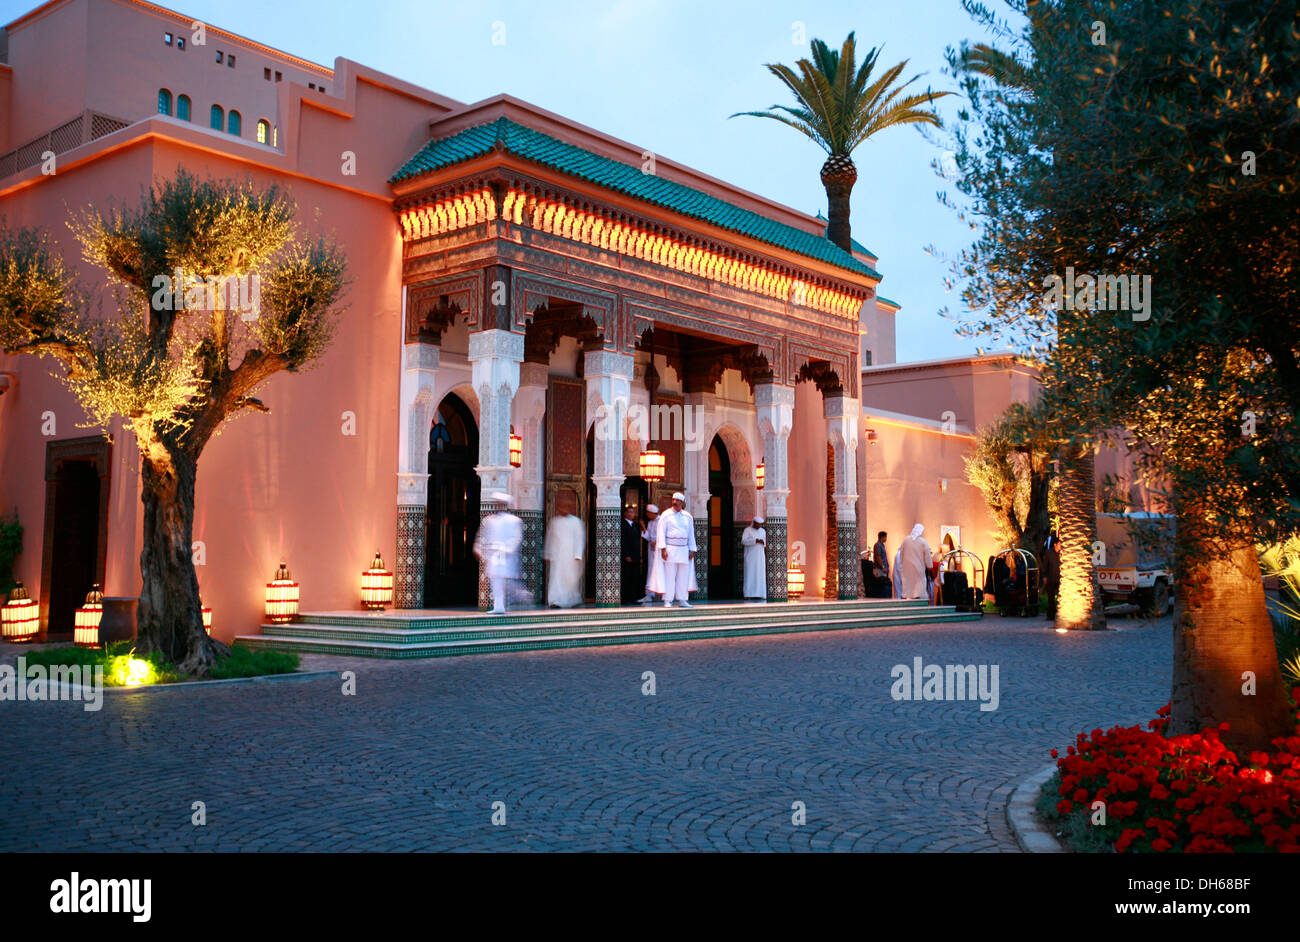 la mamounia luxury hotel marrakech morocco africa stock photo royalty free image 62218563. Black Bedroom Furniture Sets. Home Design Ideas